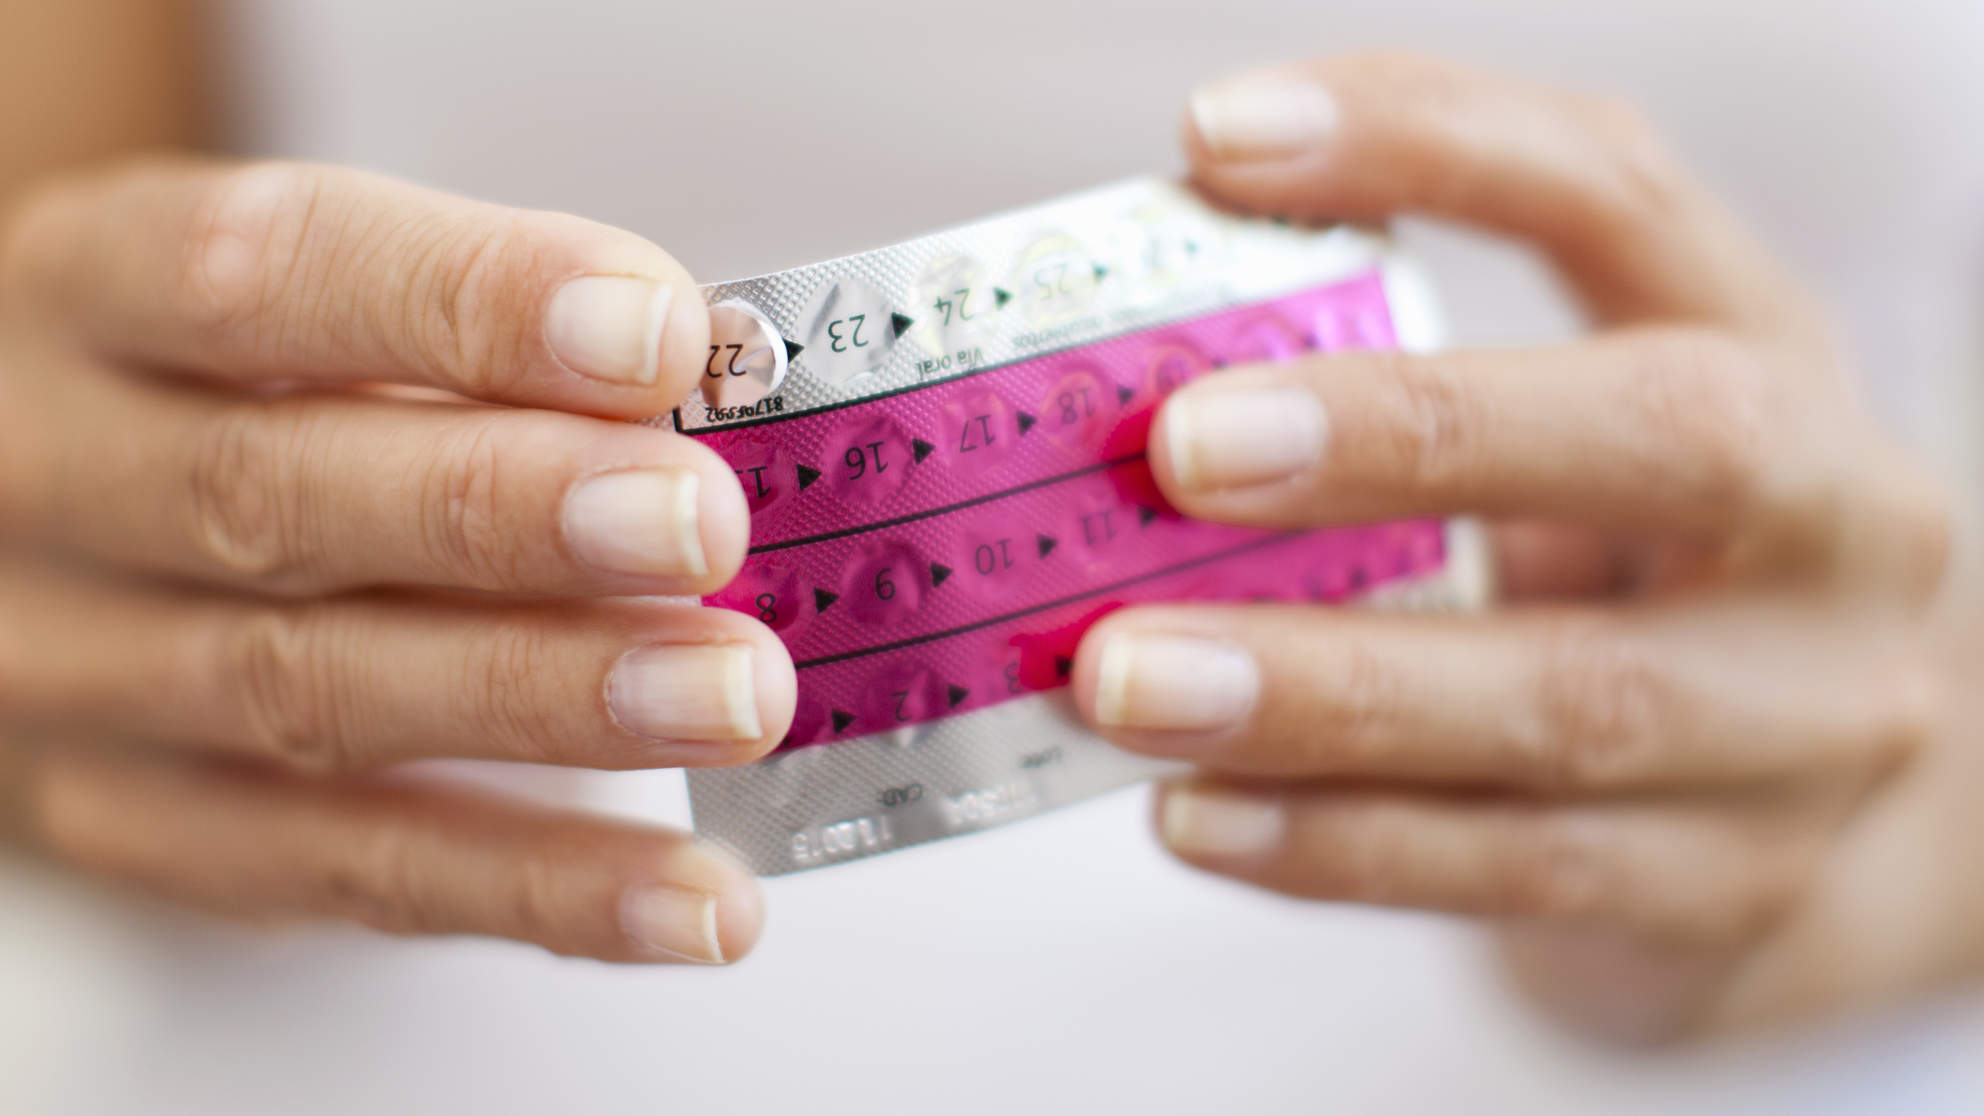 It's Not in Your Head: Your Birth Control Pills Might Be Making You Feel Crappy